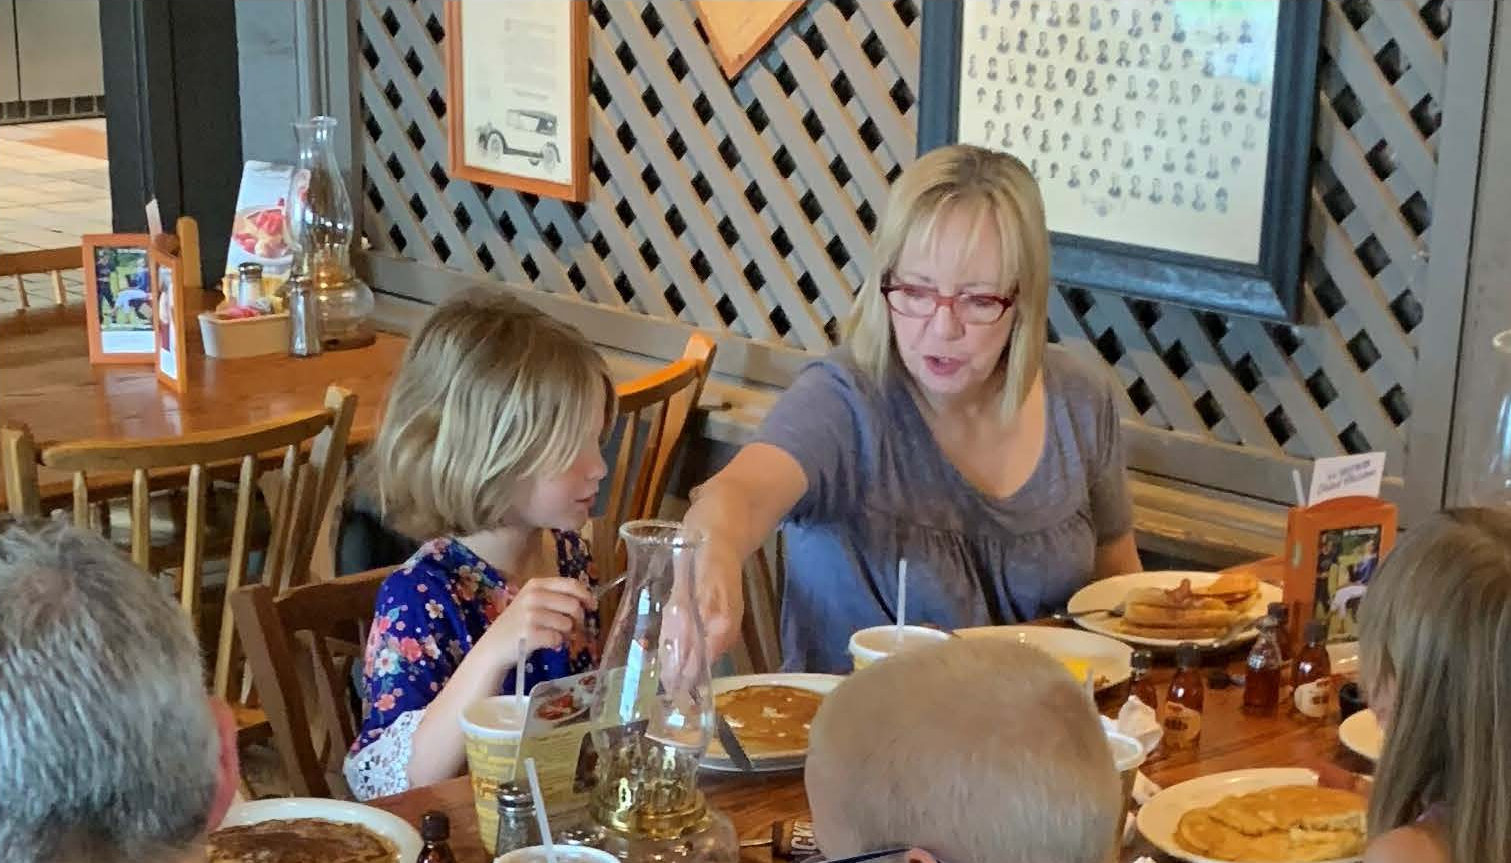 B and Debbie in May 2019 at Corbin's year-end Match Celebration at Cracker Barrel